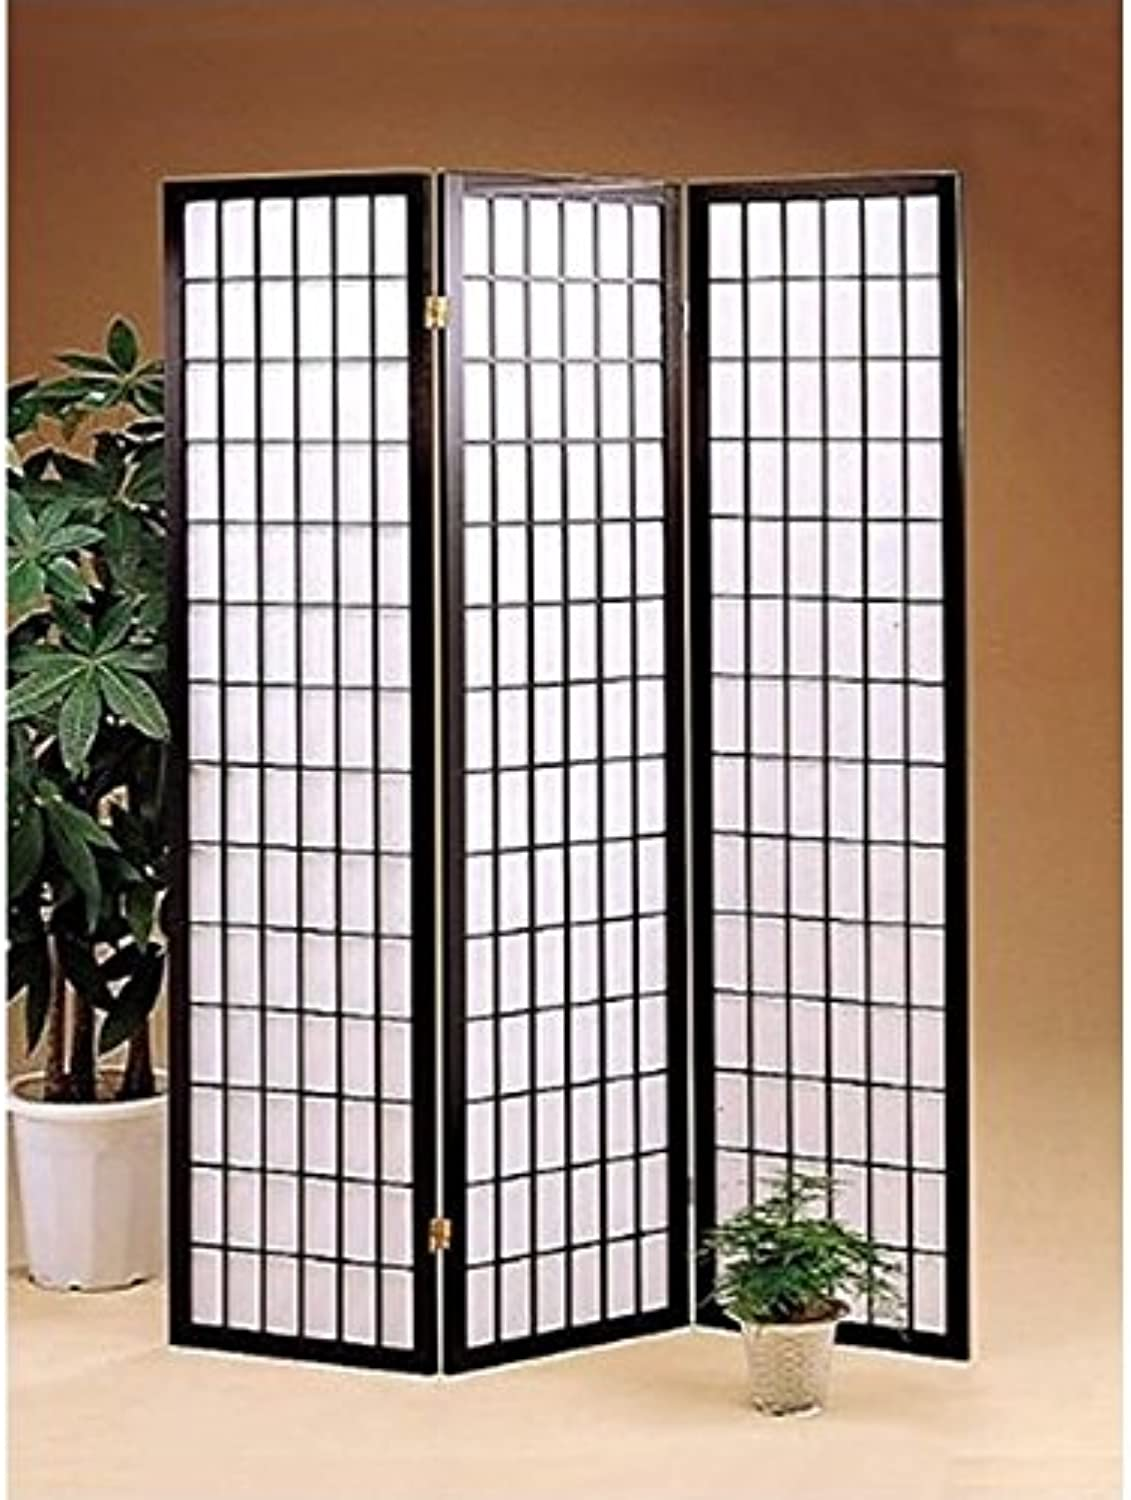 Bowery Hill Three Panel Screen Room Divider in Black